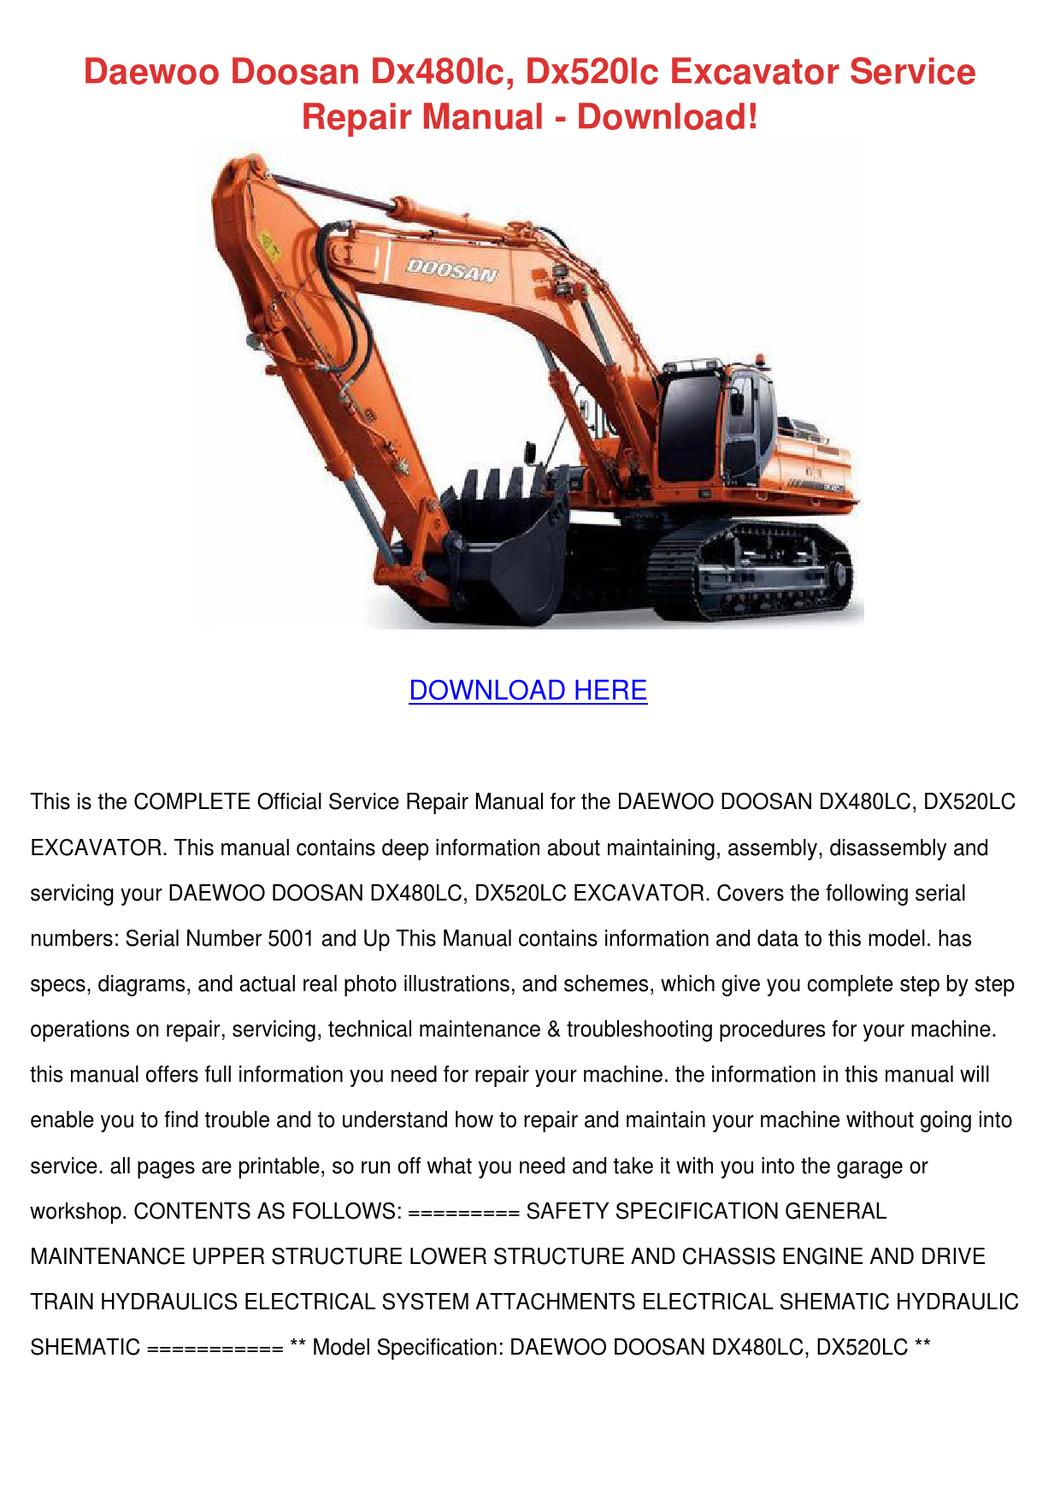 Daewoo Doosan Dx480lc Dx520lc Excavator Servi By Concettacabral Issuu Hydraulic System Diagram Serial Numbers